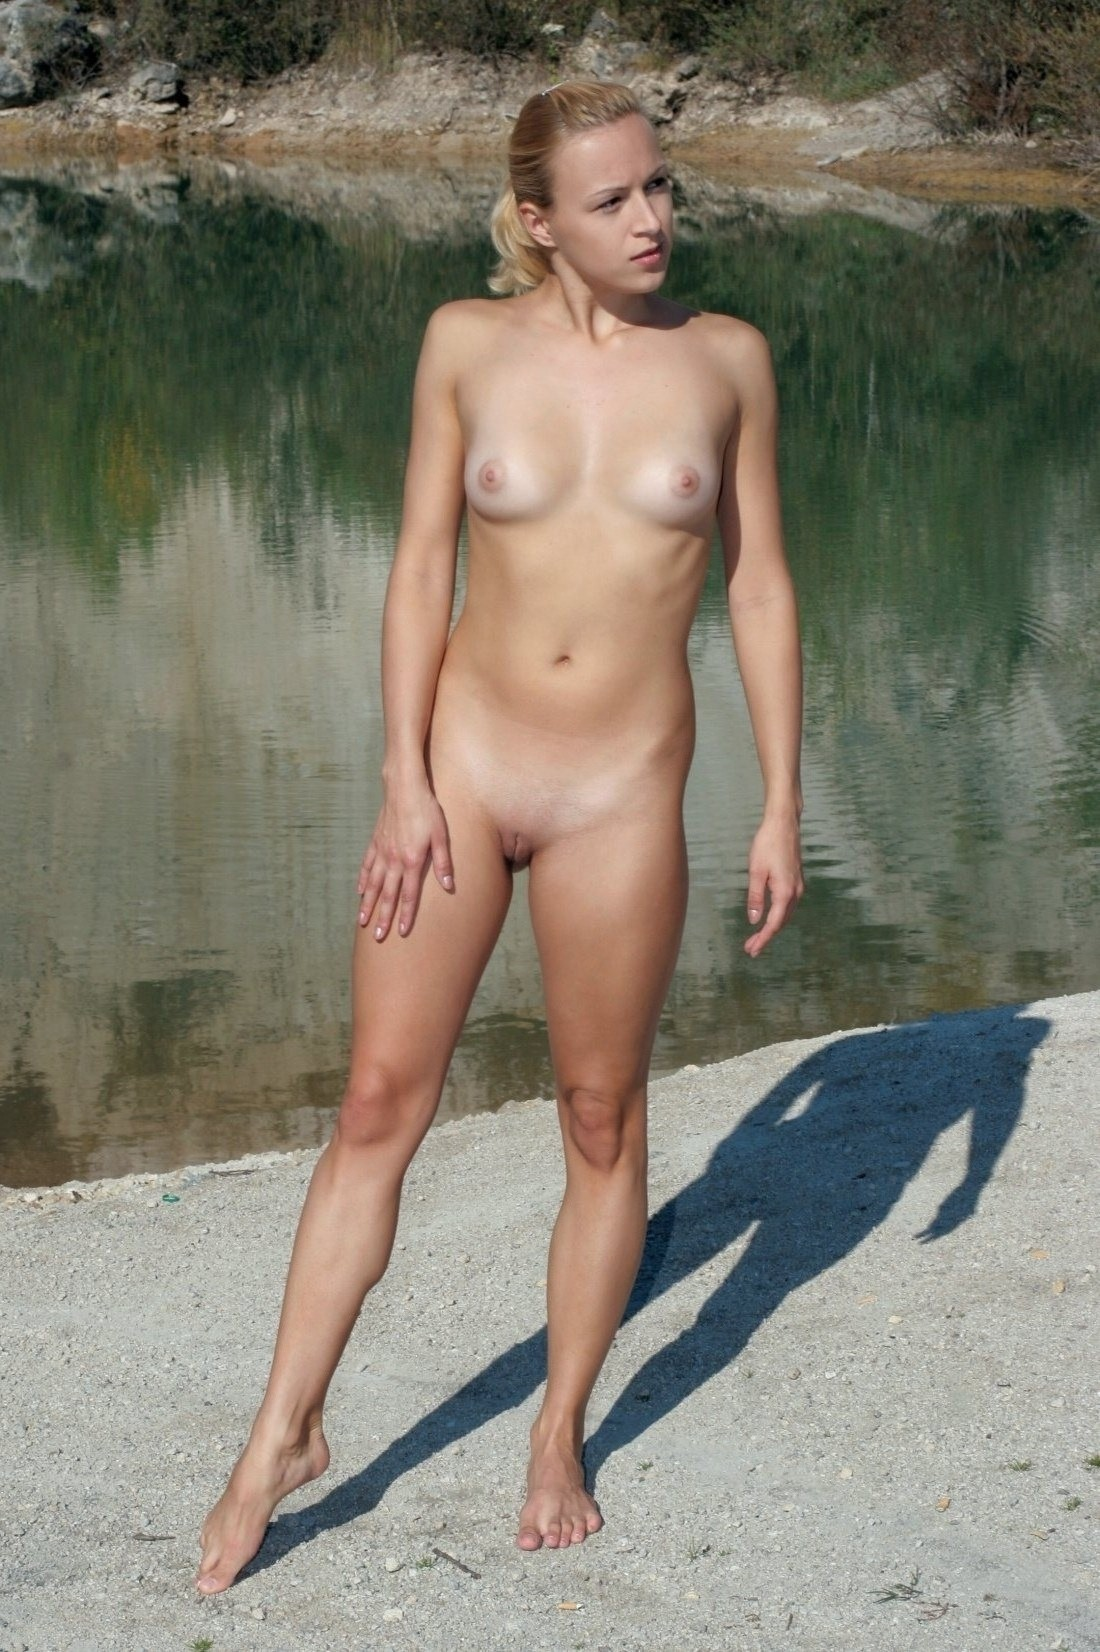 Speaking, nude beach picture europe